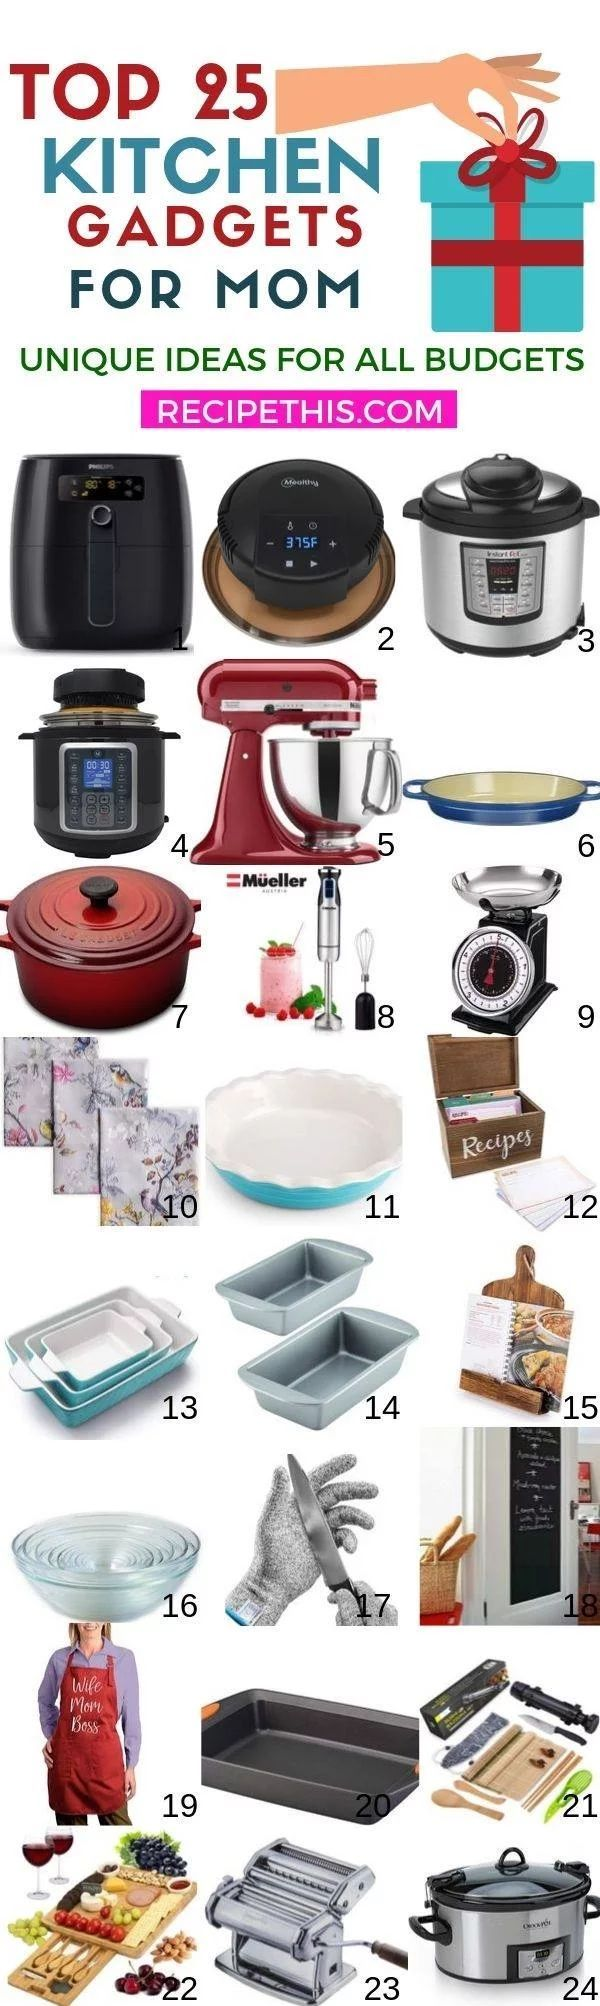 Top 25 Best Kitchen Gadgets For Mom Recipe This Cool Kitchen Gadgets Kitchen Gadgets Gifts Kitchen Gadgets